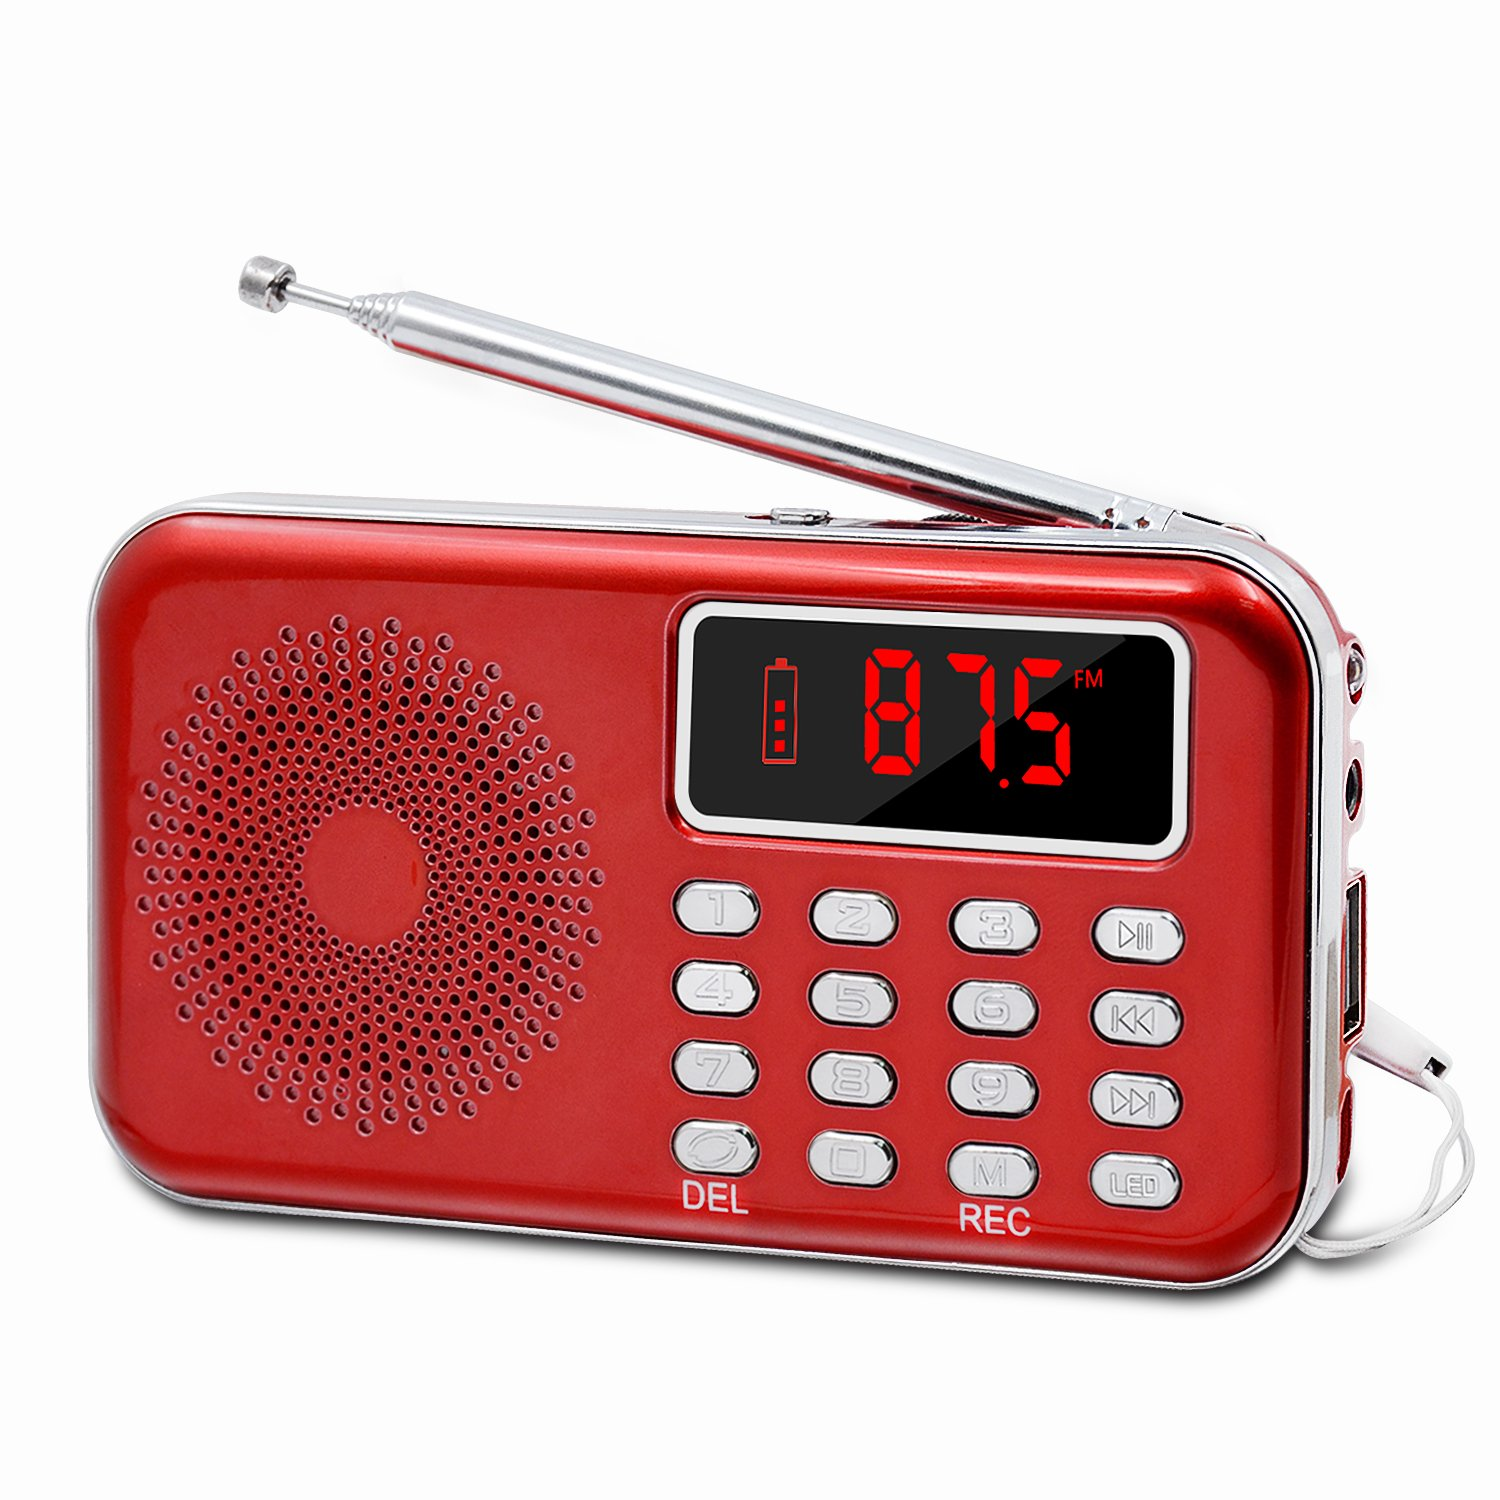 LEFON Mini Digital FM Radio + MP3 Music Player + Digital Voice Recorders Support TF Card / USB Disk with LED Screen Display Emergency Flashlight (Red)